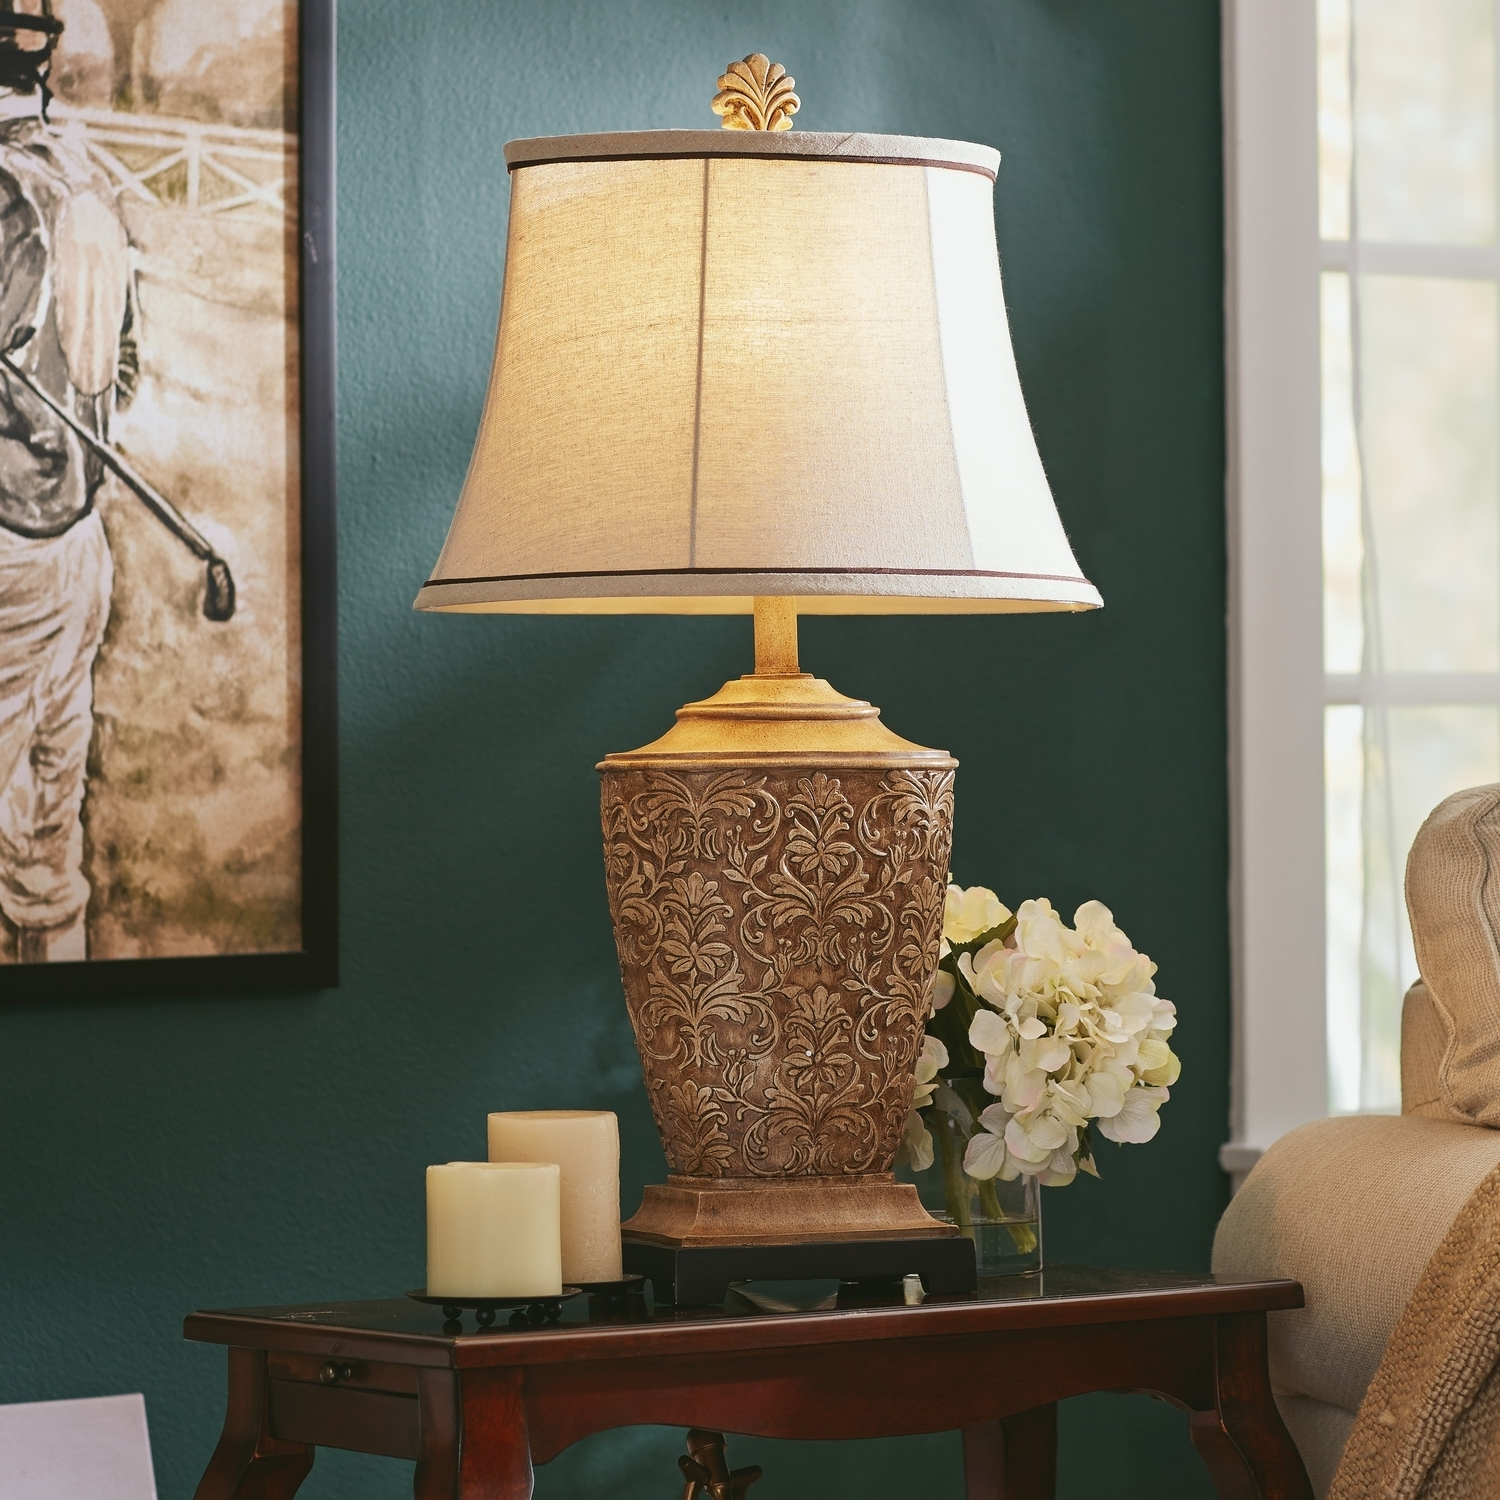 Fashionable Table Lamps For Living Room 15 With Table Lamps For Living Room Within Living Room Table Lamps (View 4 of 15)